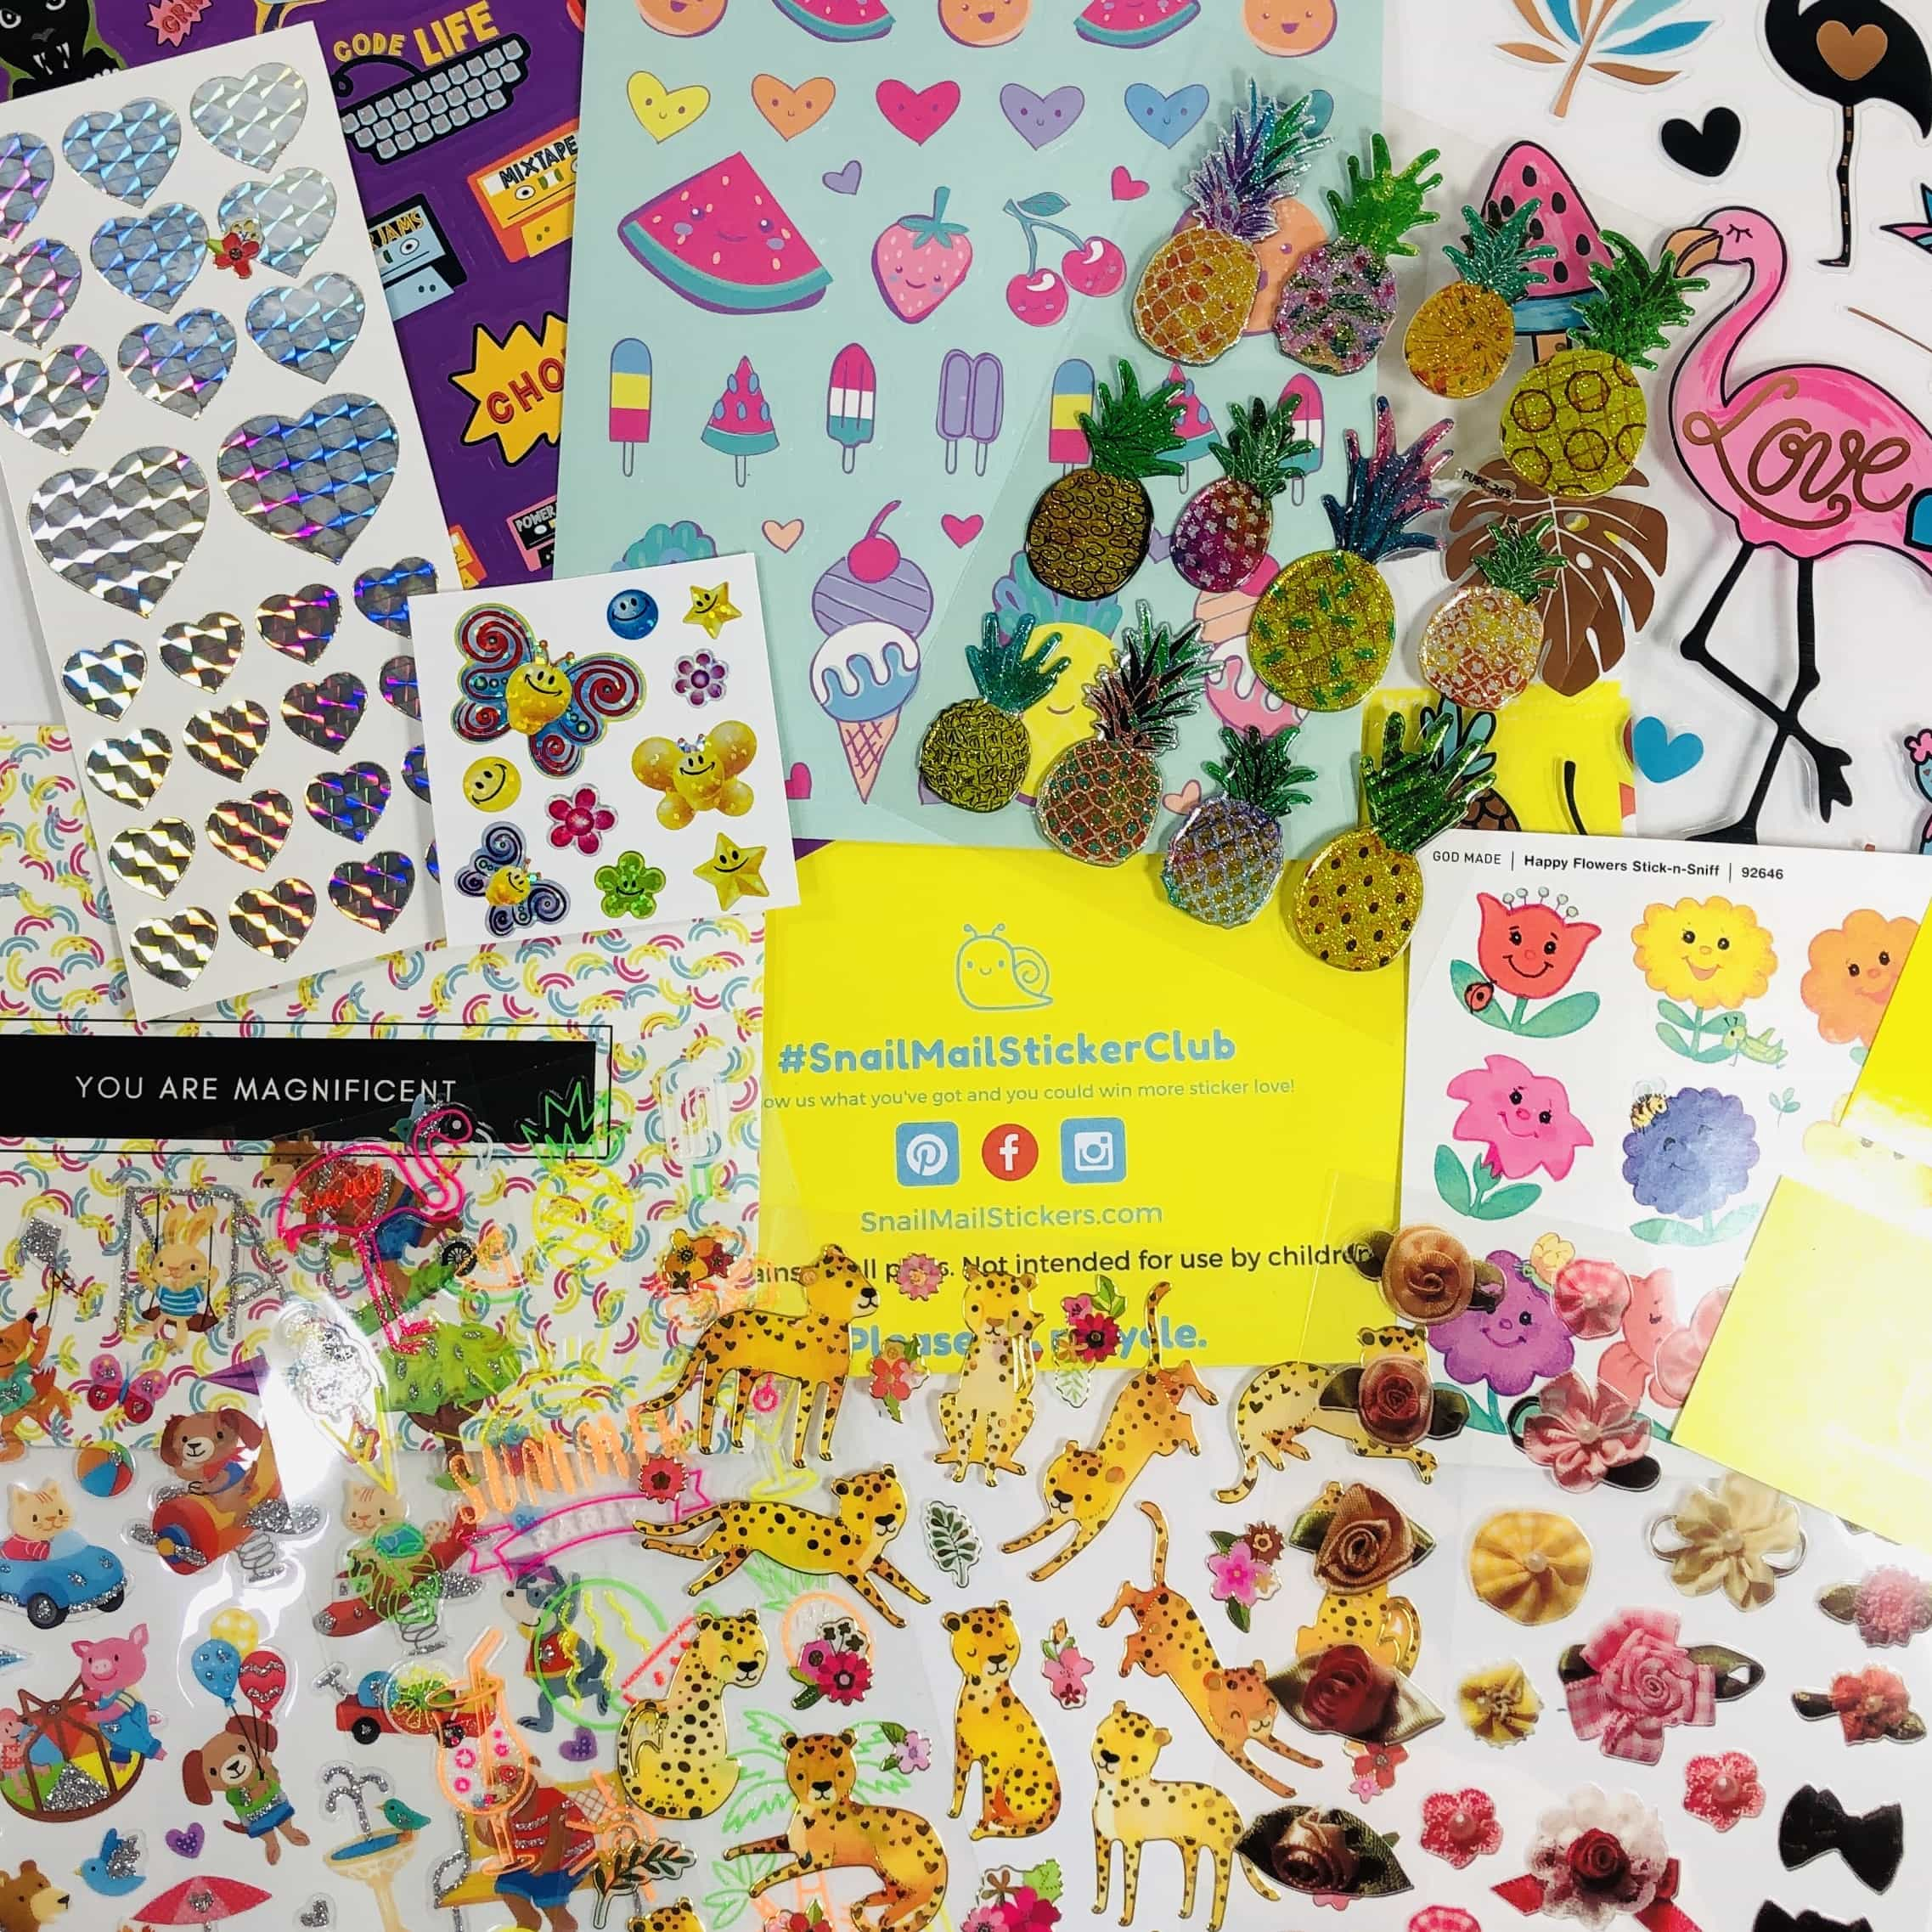 Snail Mail Sticker Club August 2019 Subscription Box Review + Coupon